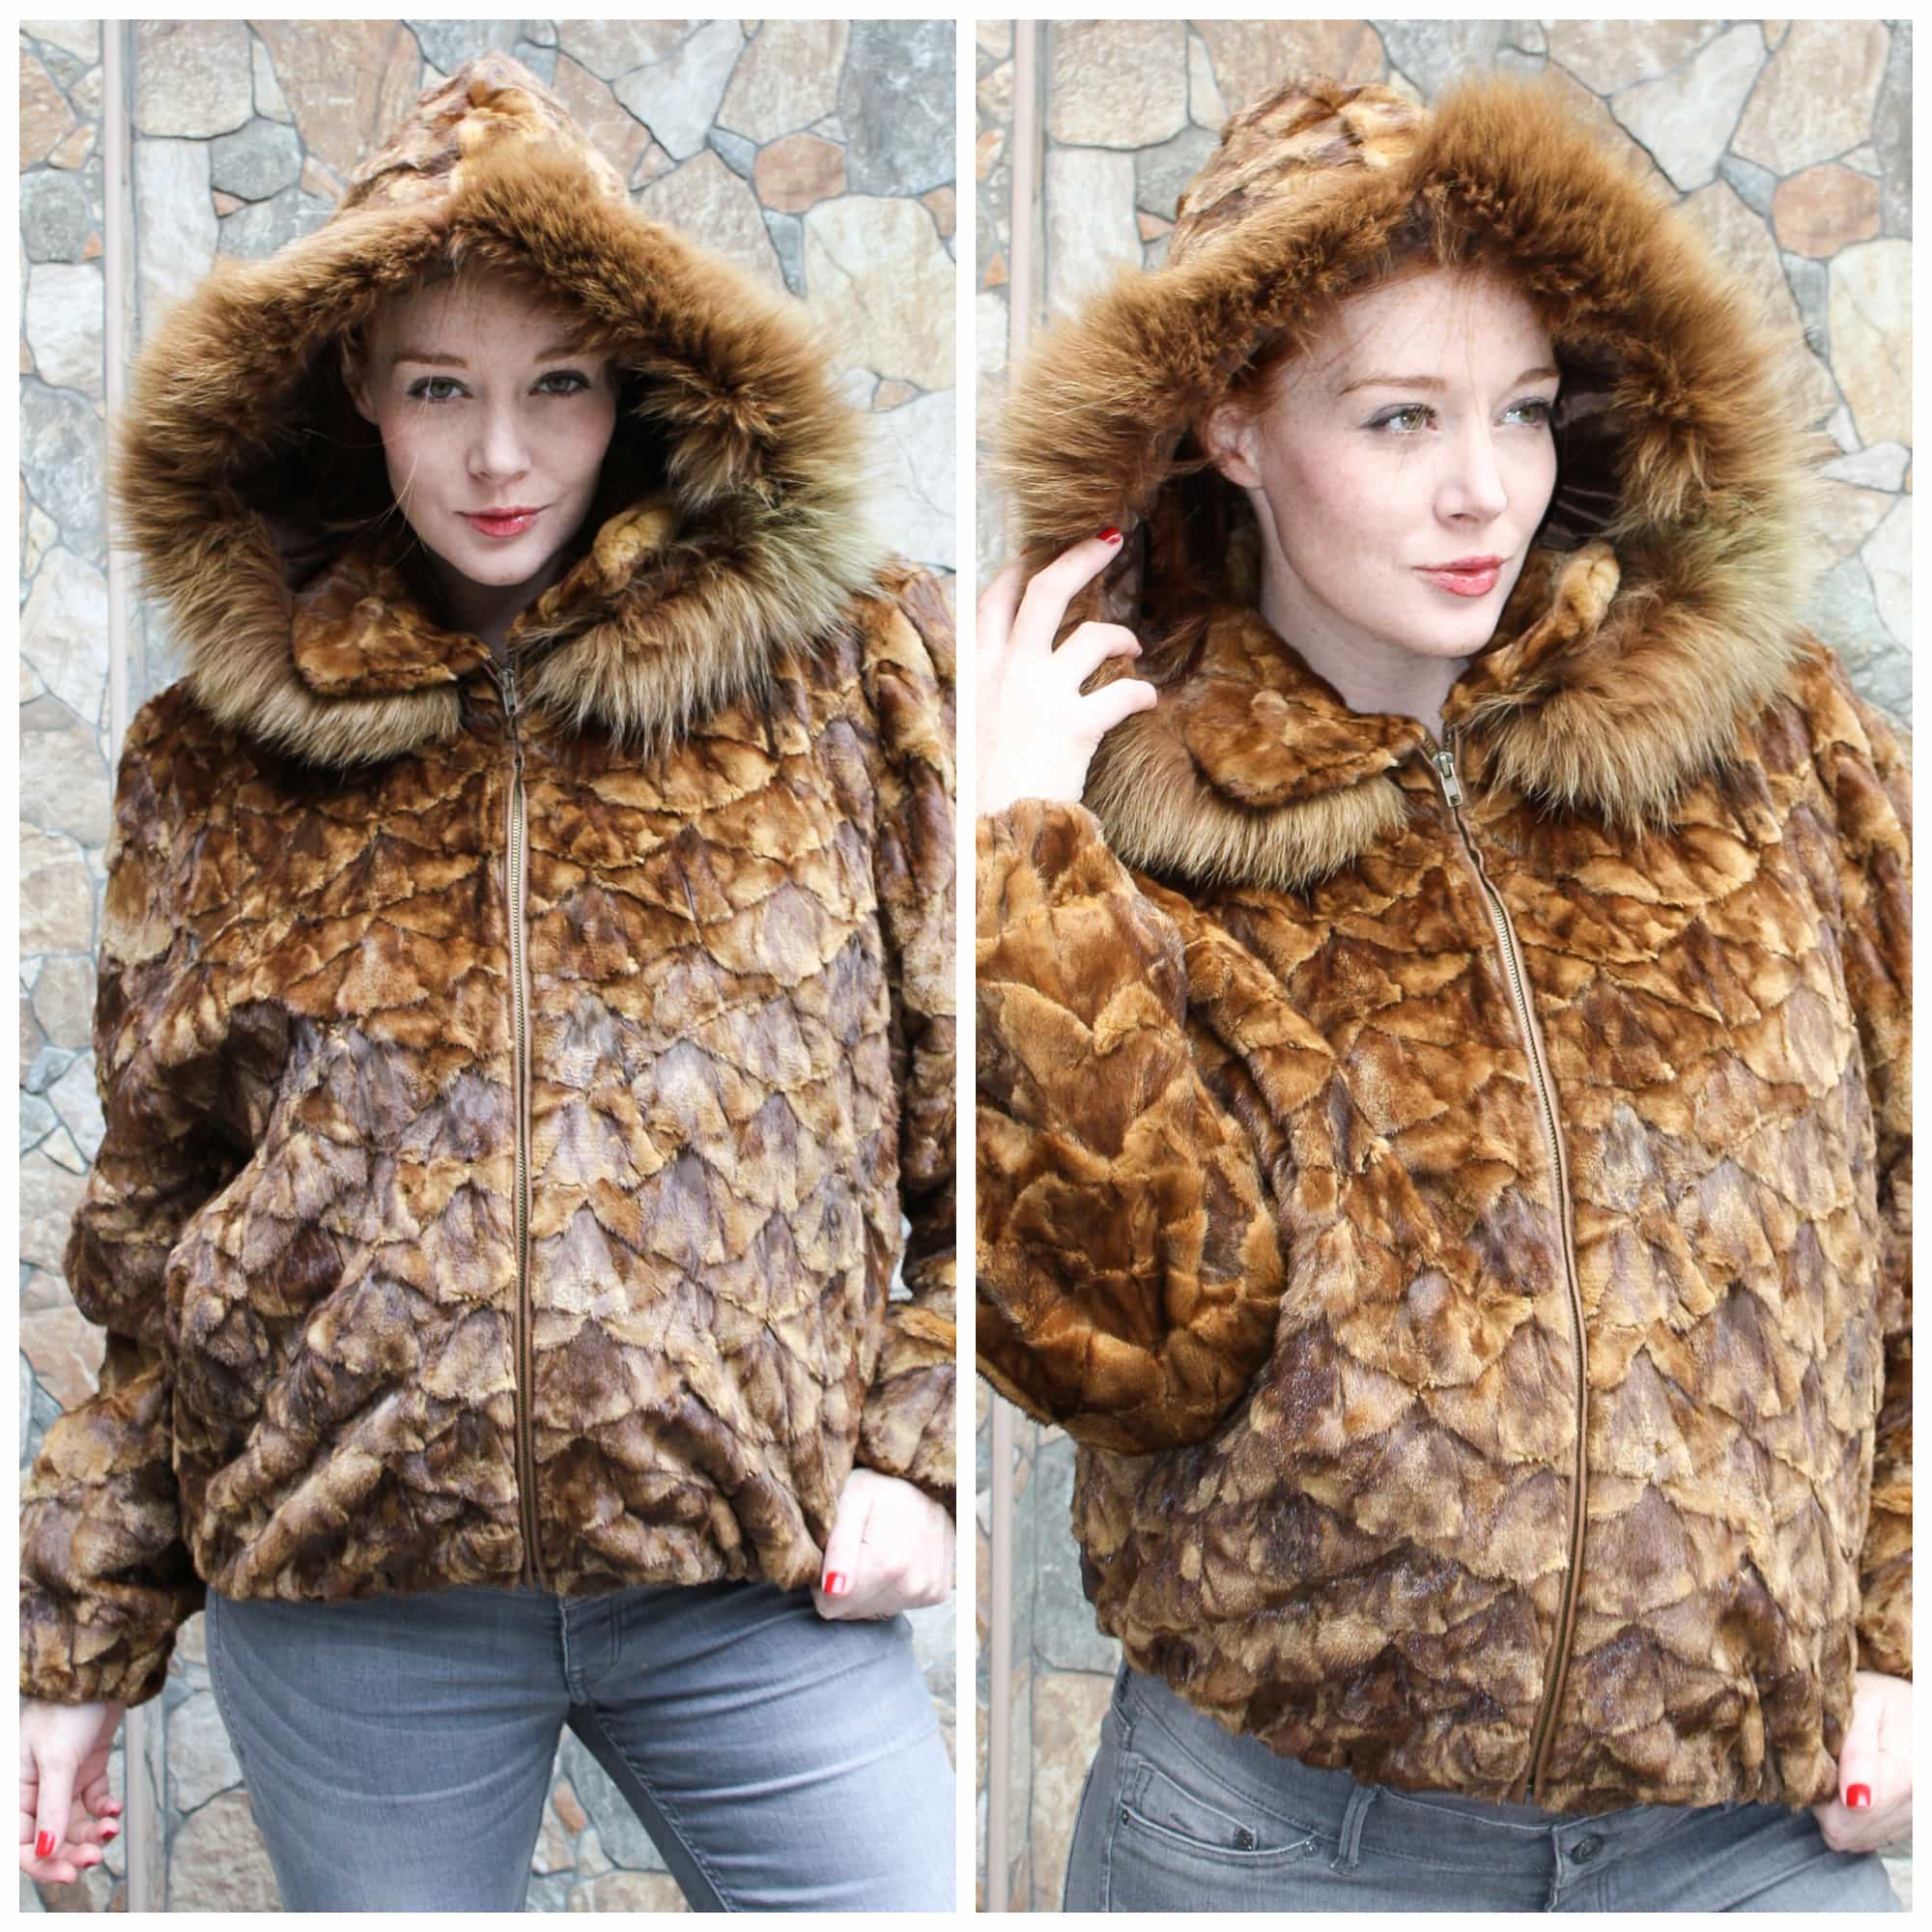 Hooded Whiskey-colored Sculptured Mink Jacket, now on Clearance from Marc Kaufman Furs NYC For a limited time -- only $595 --